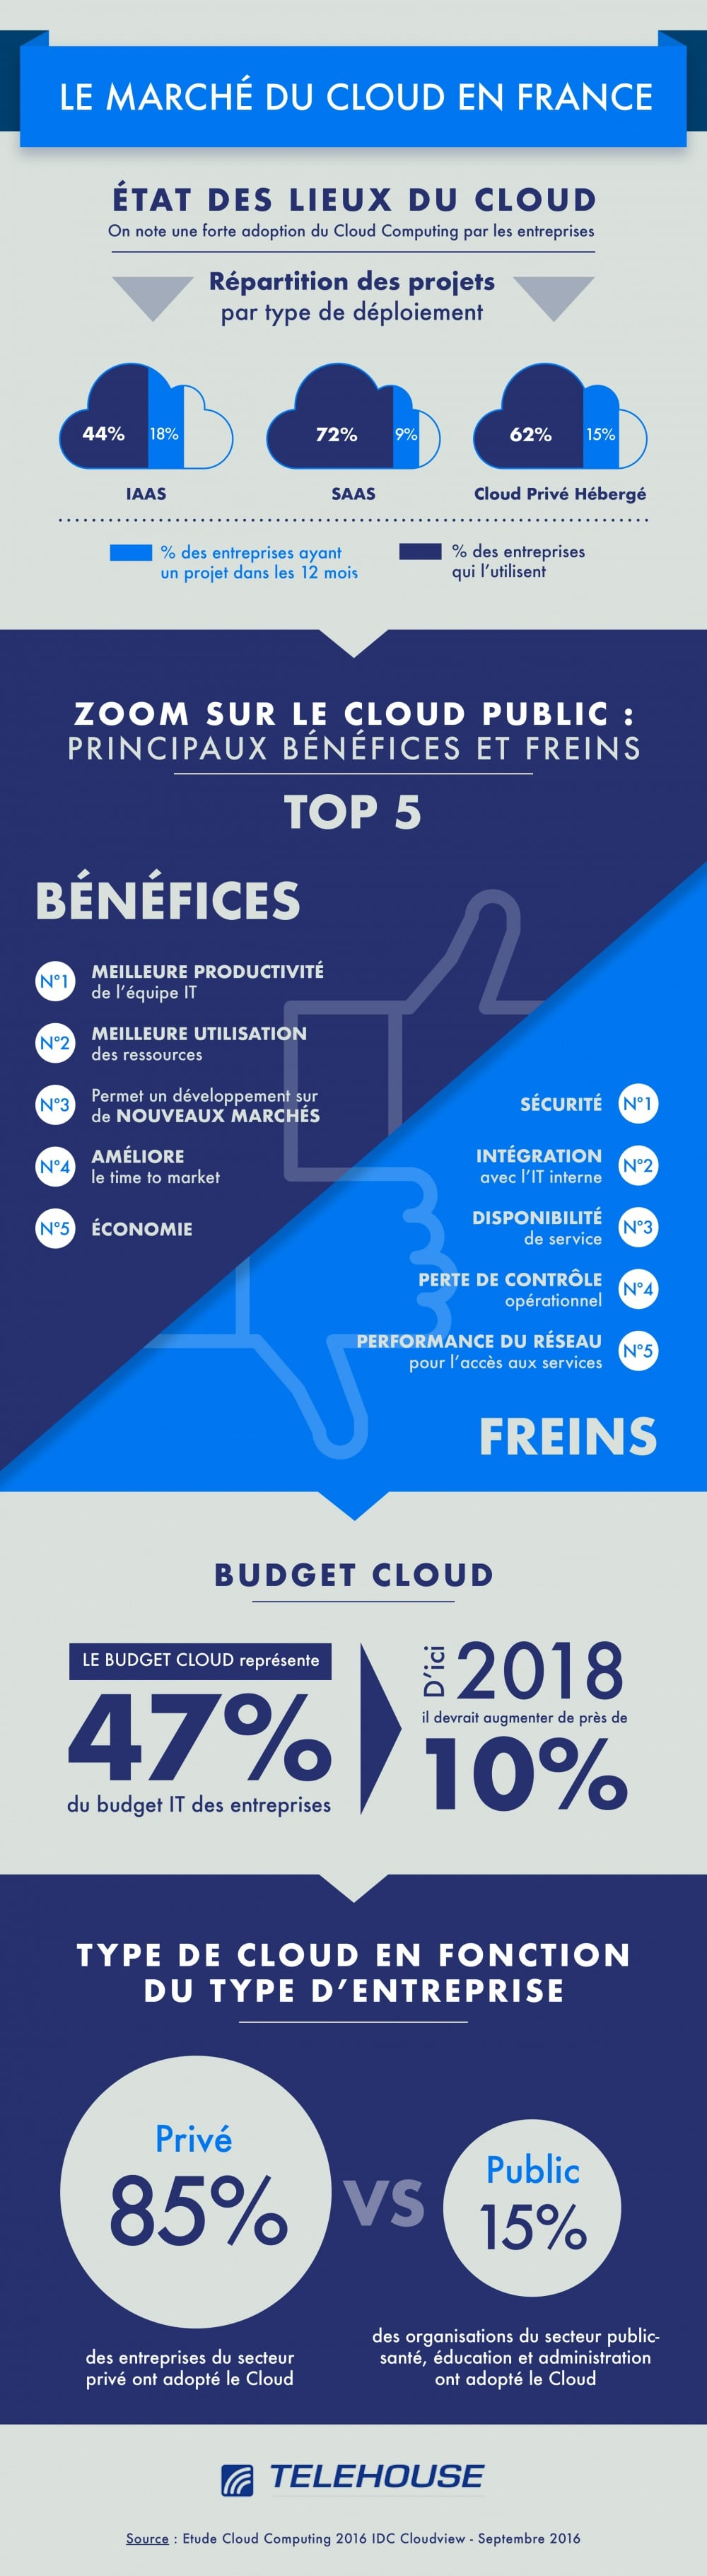 le marché du cloud en France